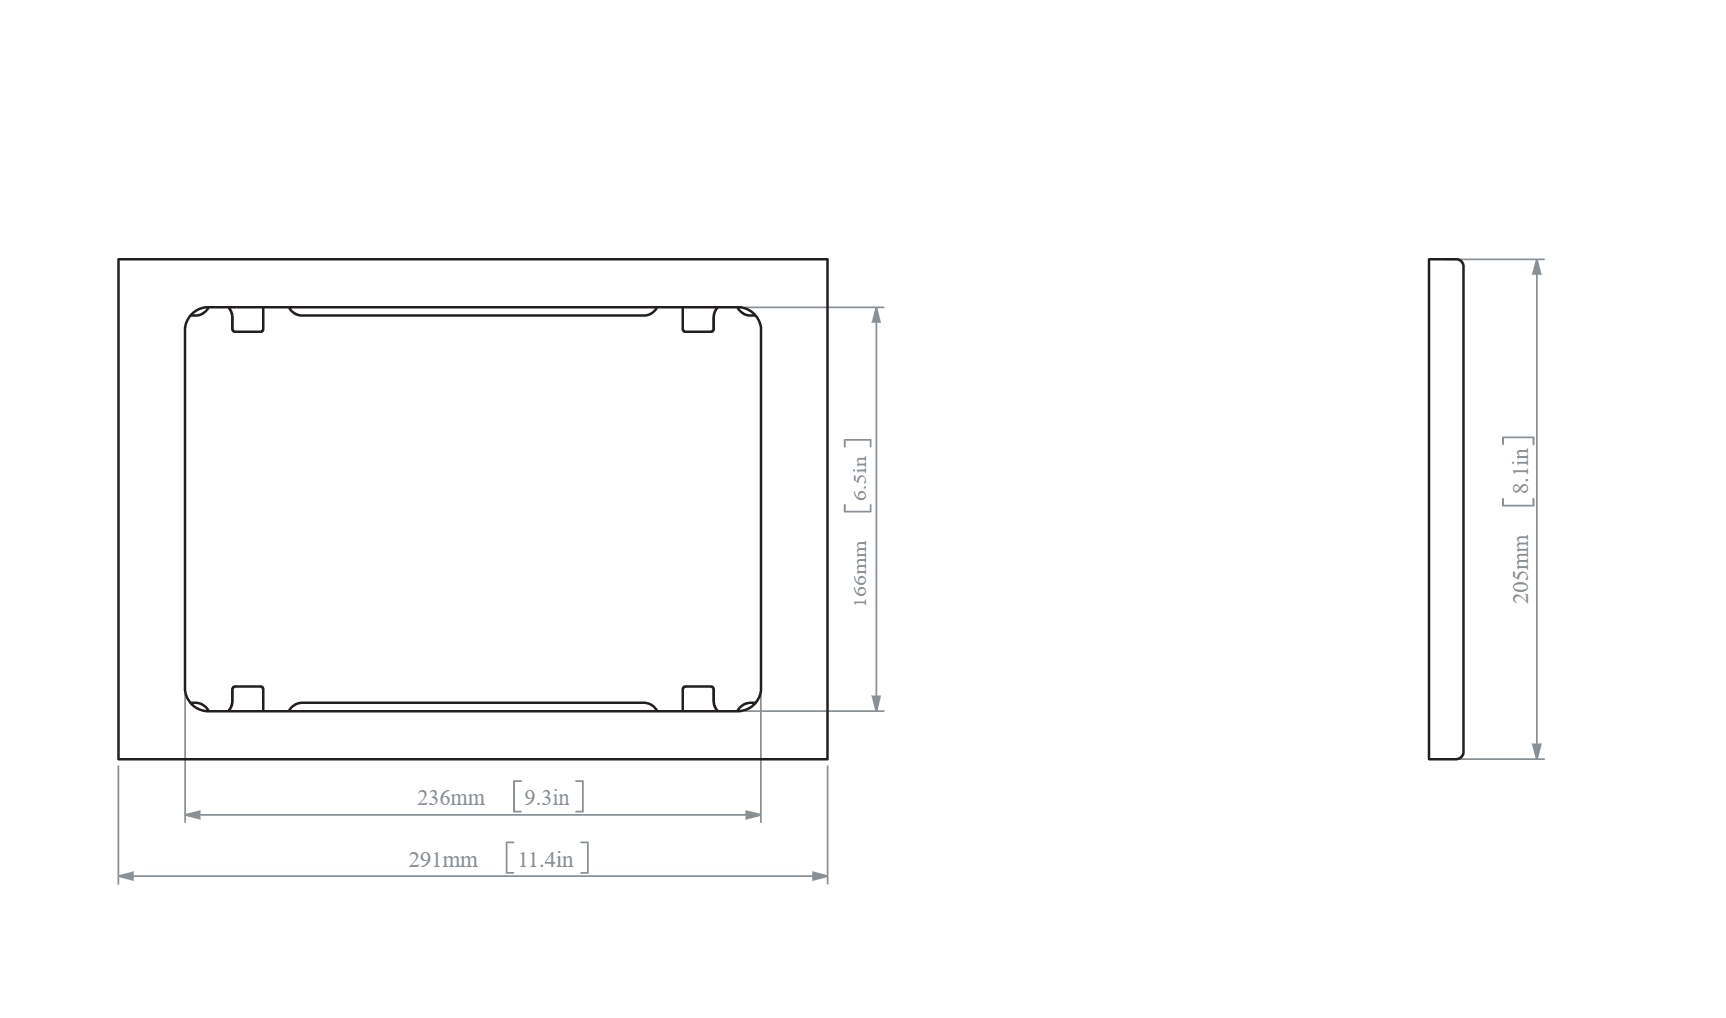 Heckler Wall Mount iPad 9.7 dimensions